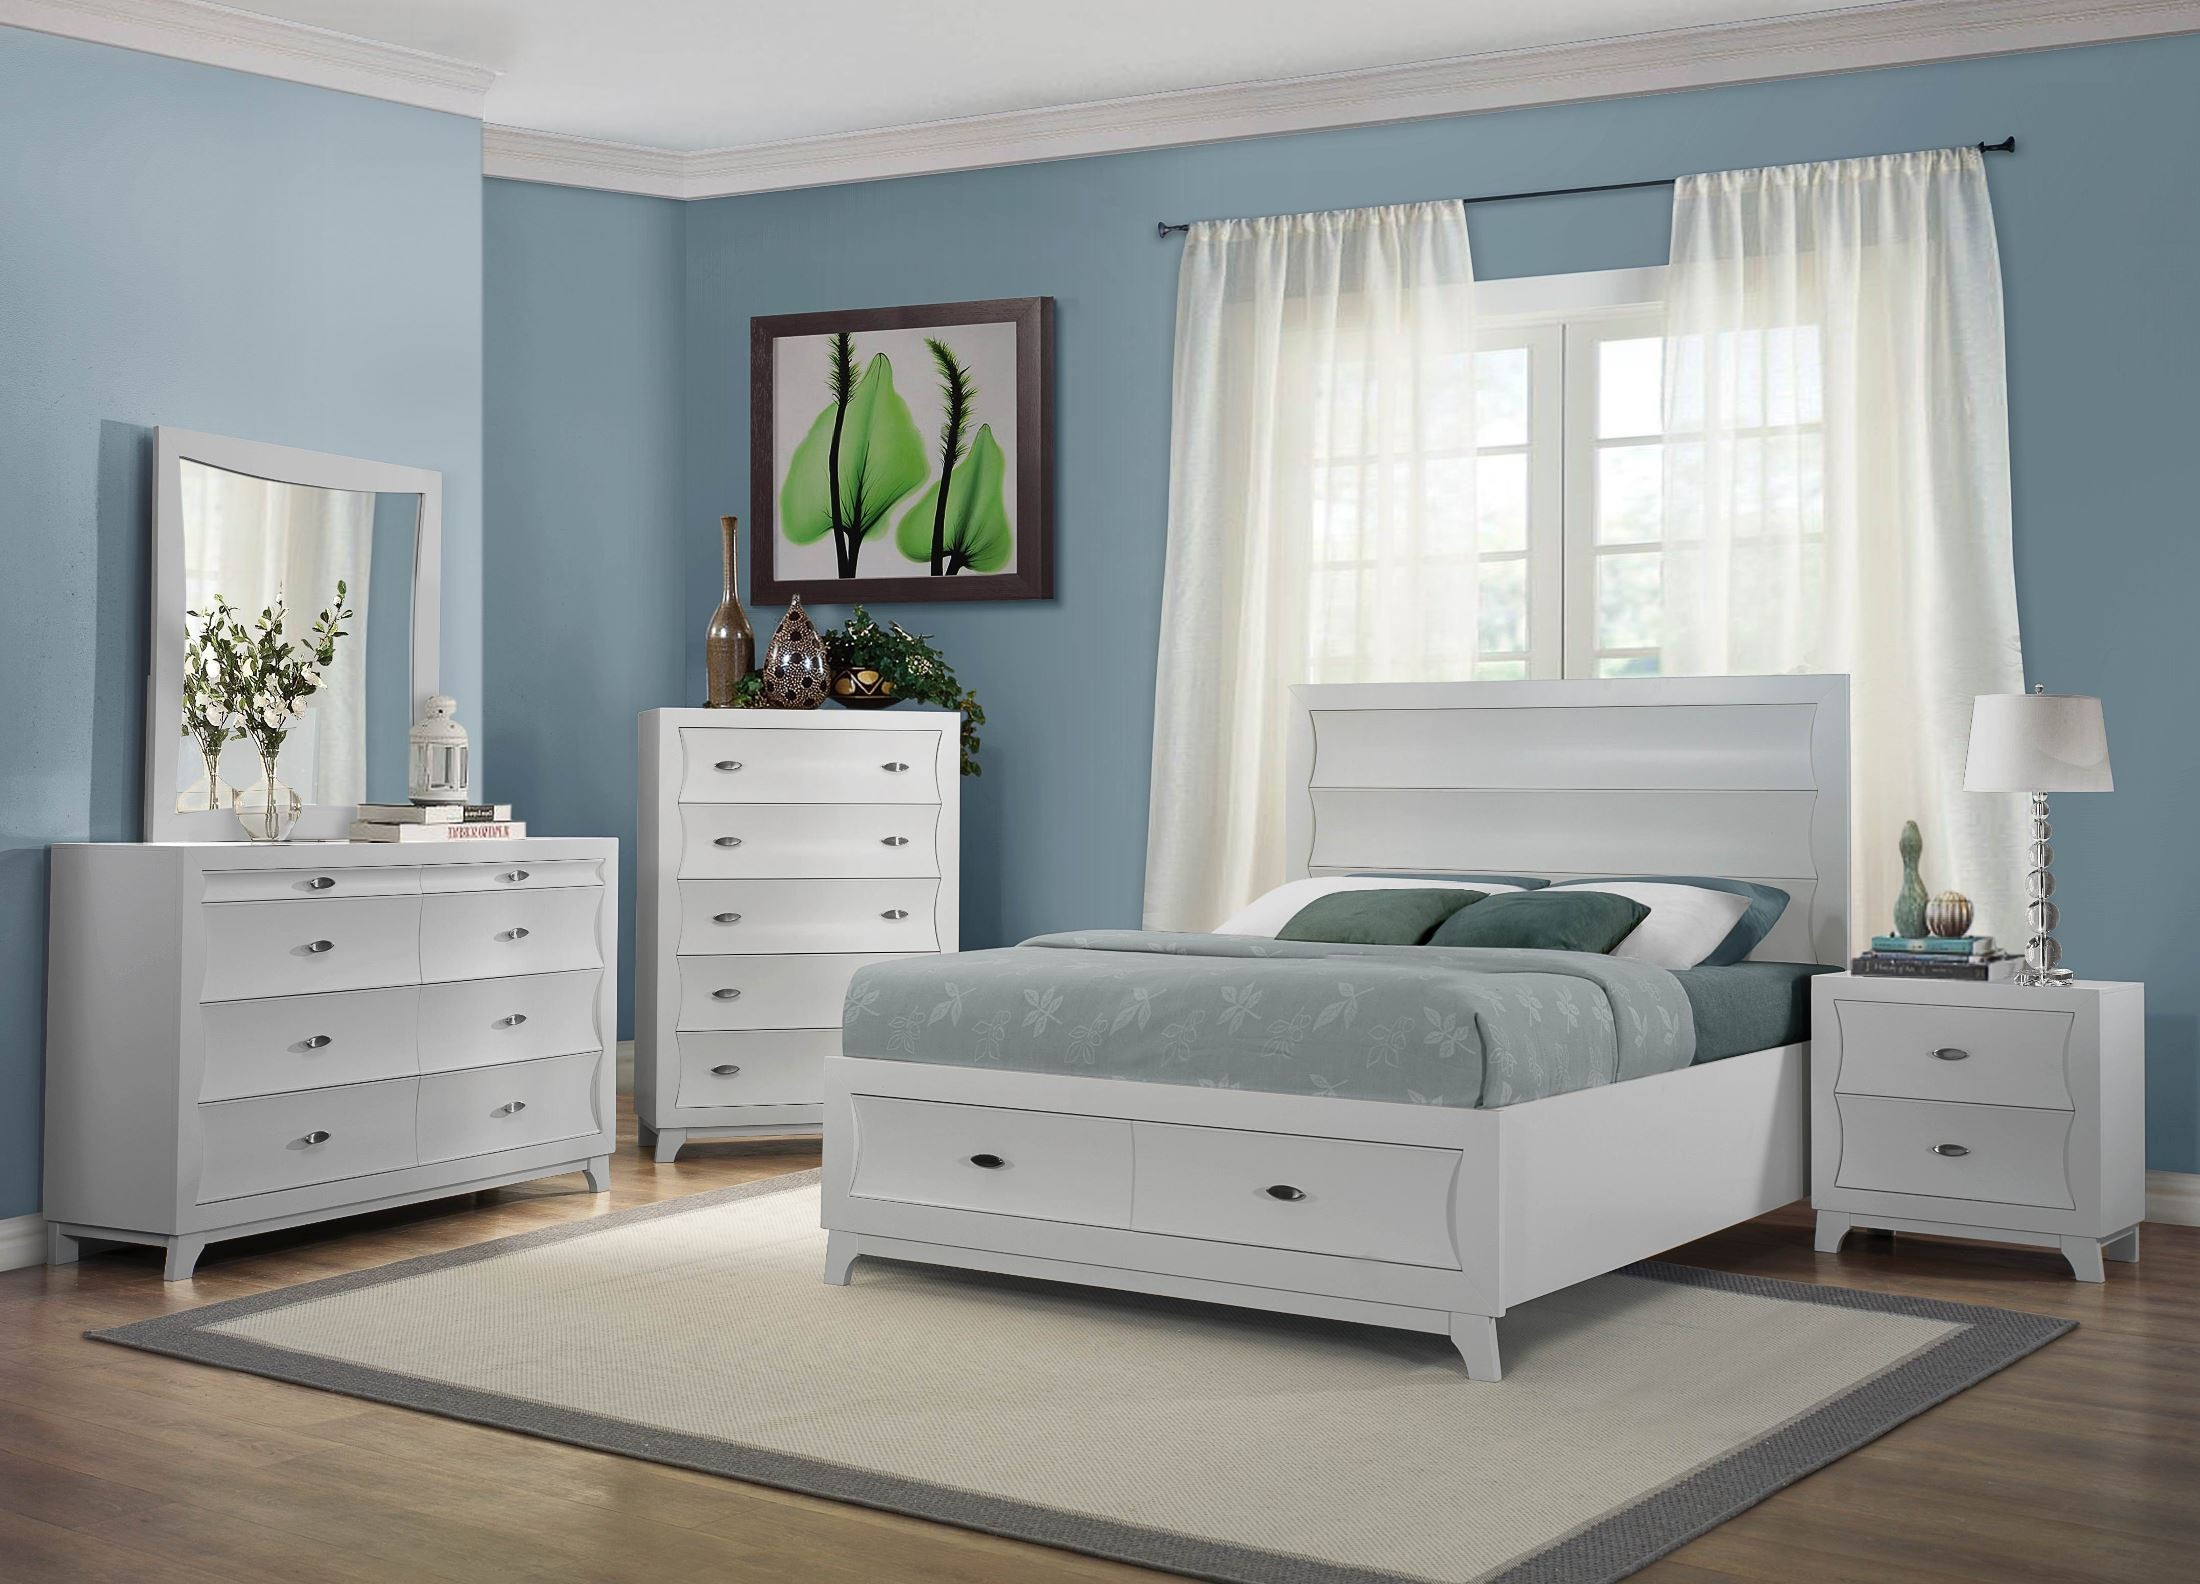 Zandra white platform storage bedroom set from homelegance for White full bedroom furniture sets